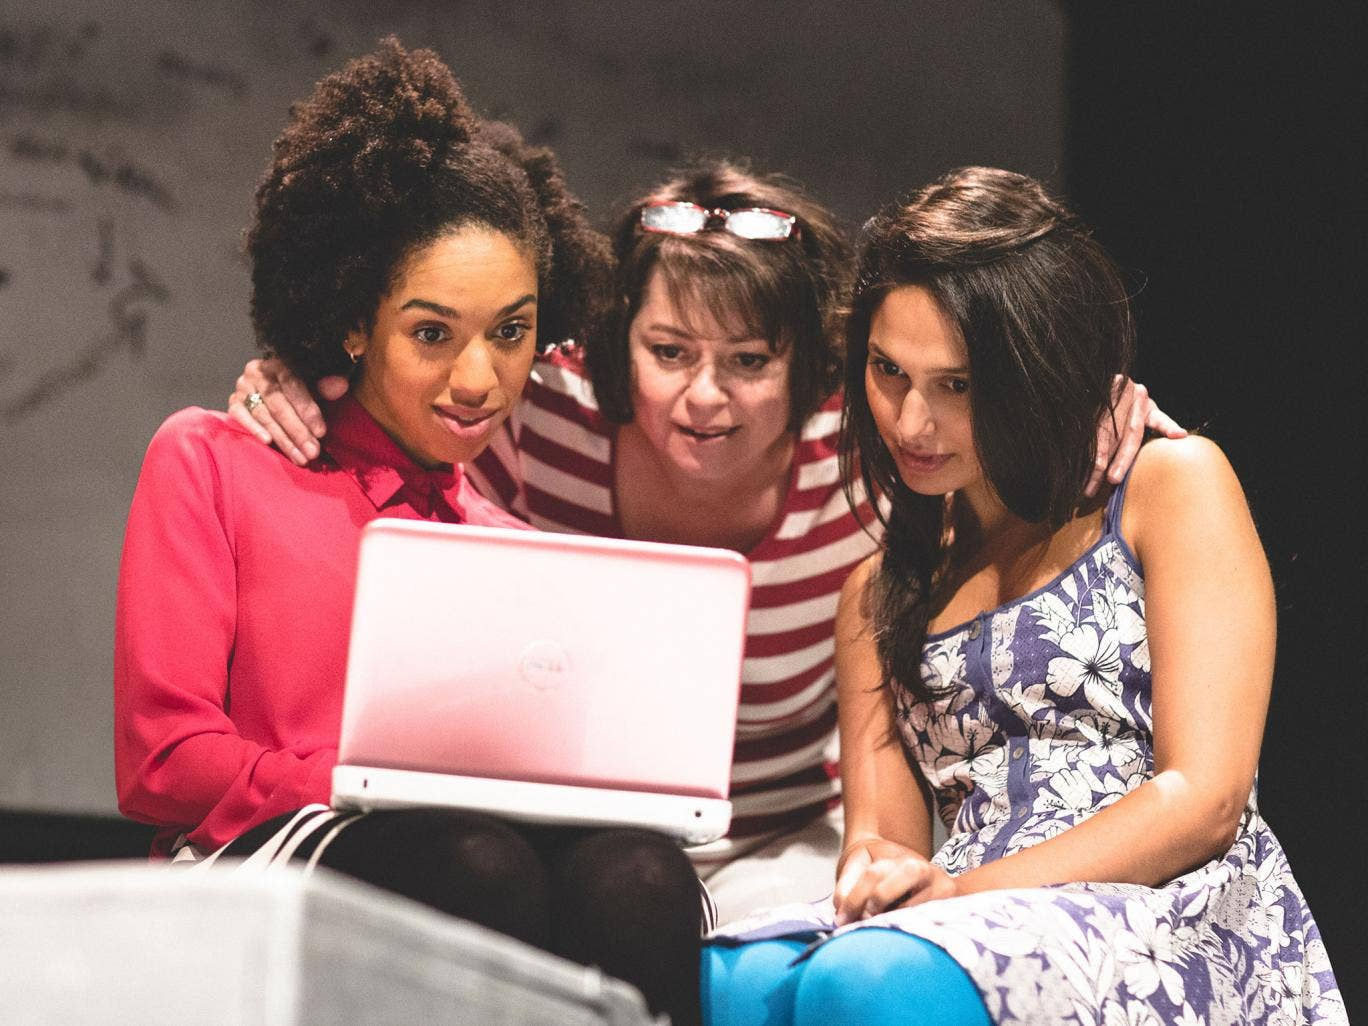 Crystal Springs by Kathy Rucker, Pearl Mackie, Suzan Sylvester and Tiana Khan